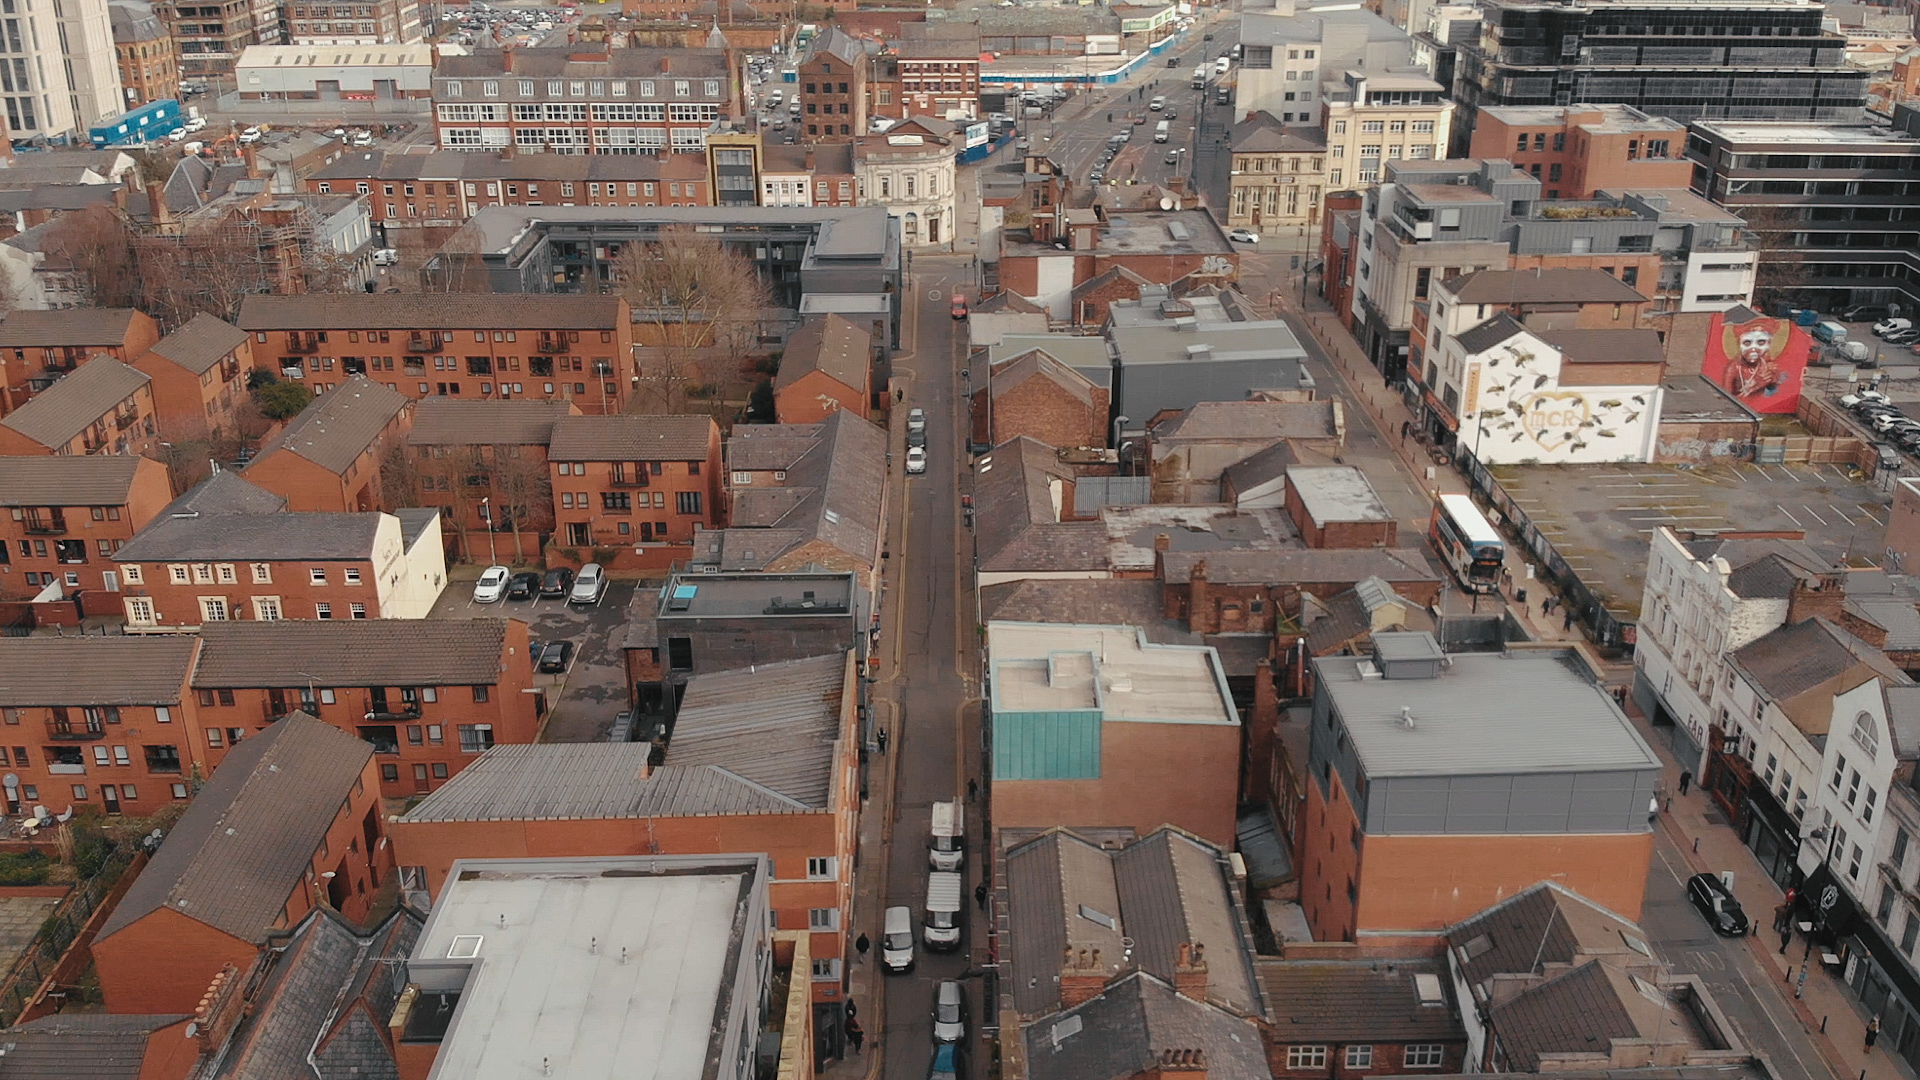 An aerial view of Manchester city in the spice epidemic